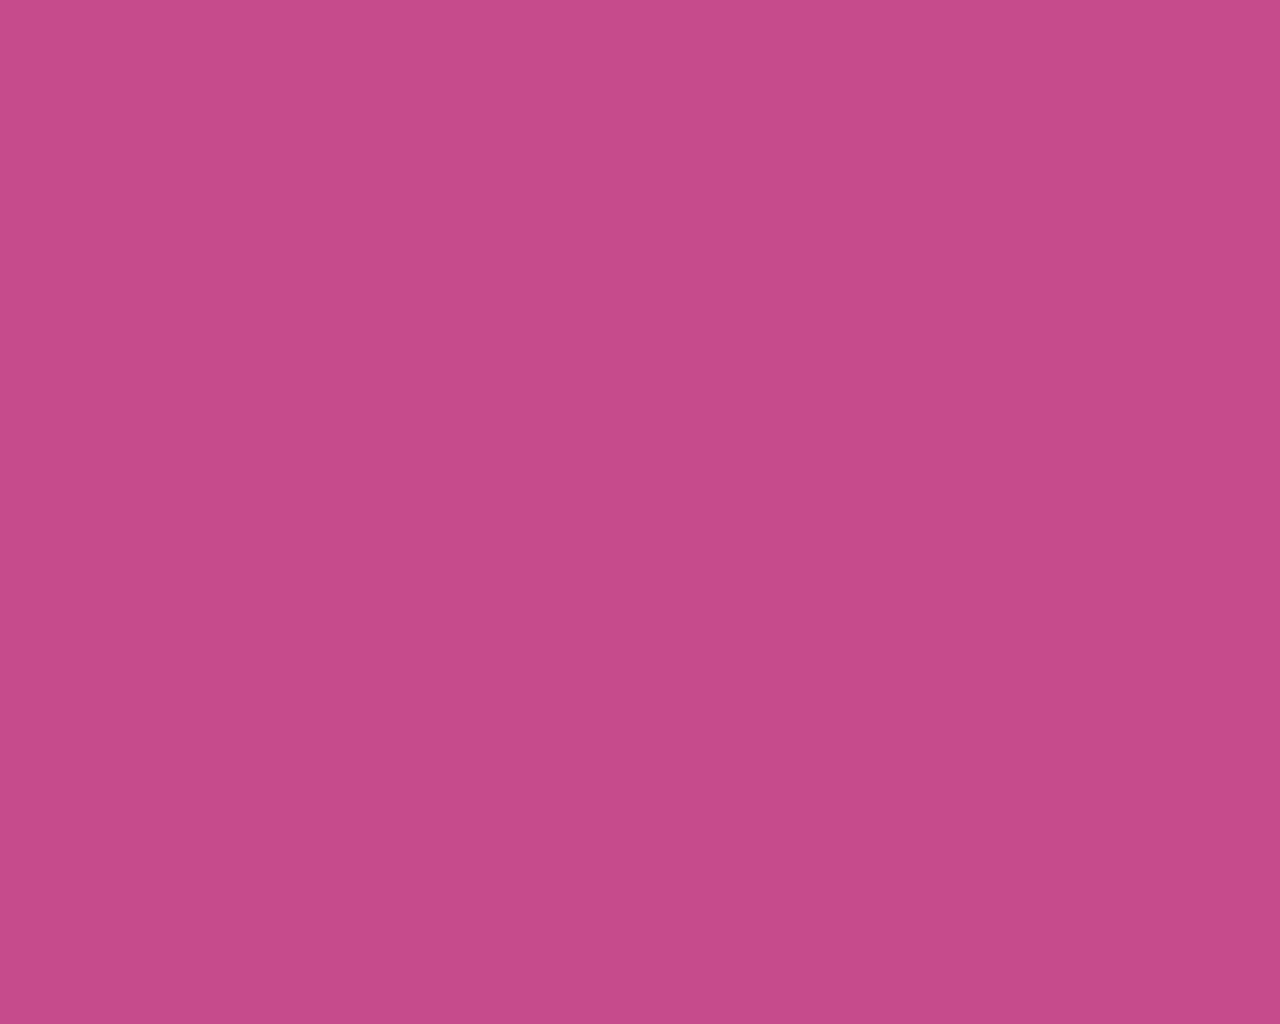 1280x1024 Mulberry Solid Color Background